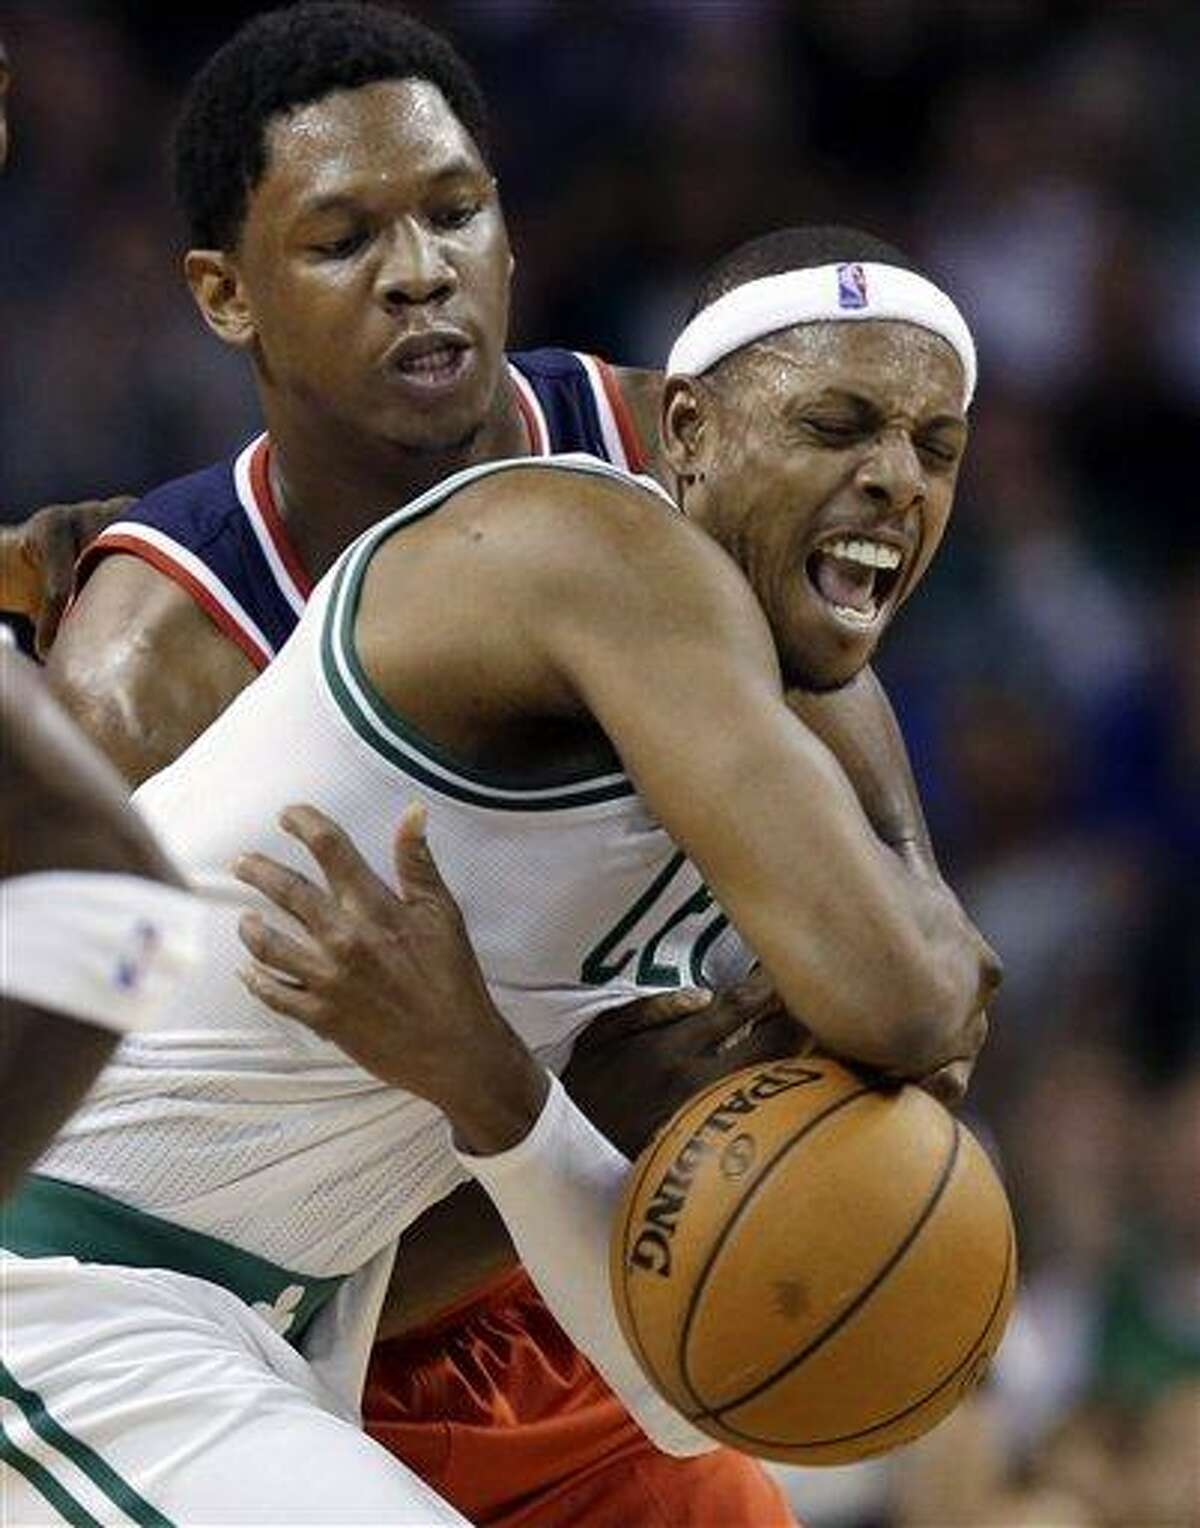 Boston Celtics forward Paul Pierce is grabbed and fouled from behind by Washington Wizards forward Kevin Seraphin after Pierce stole the ball from Seraphin during the second half of an NBA basketball game in Boston, Wednesday, Nov. 7, 2012. The Celtics won 100-94 in overtime. (AP Photo/Elise Amendola),